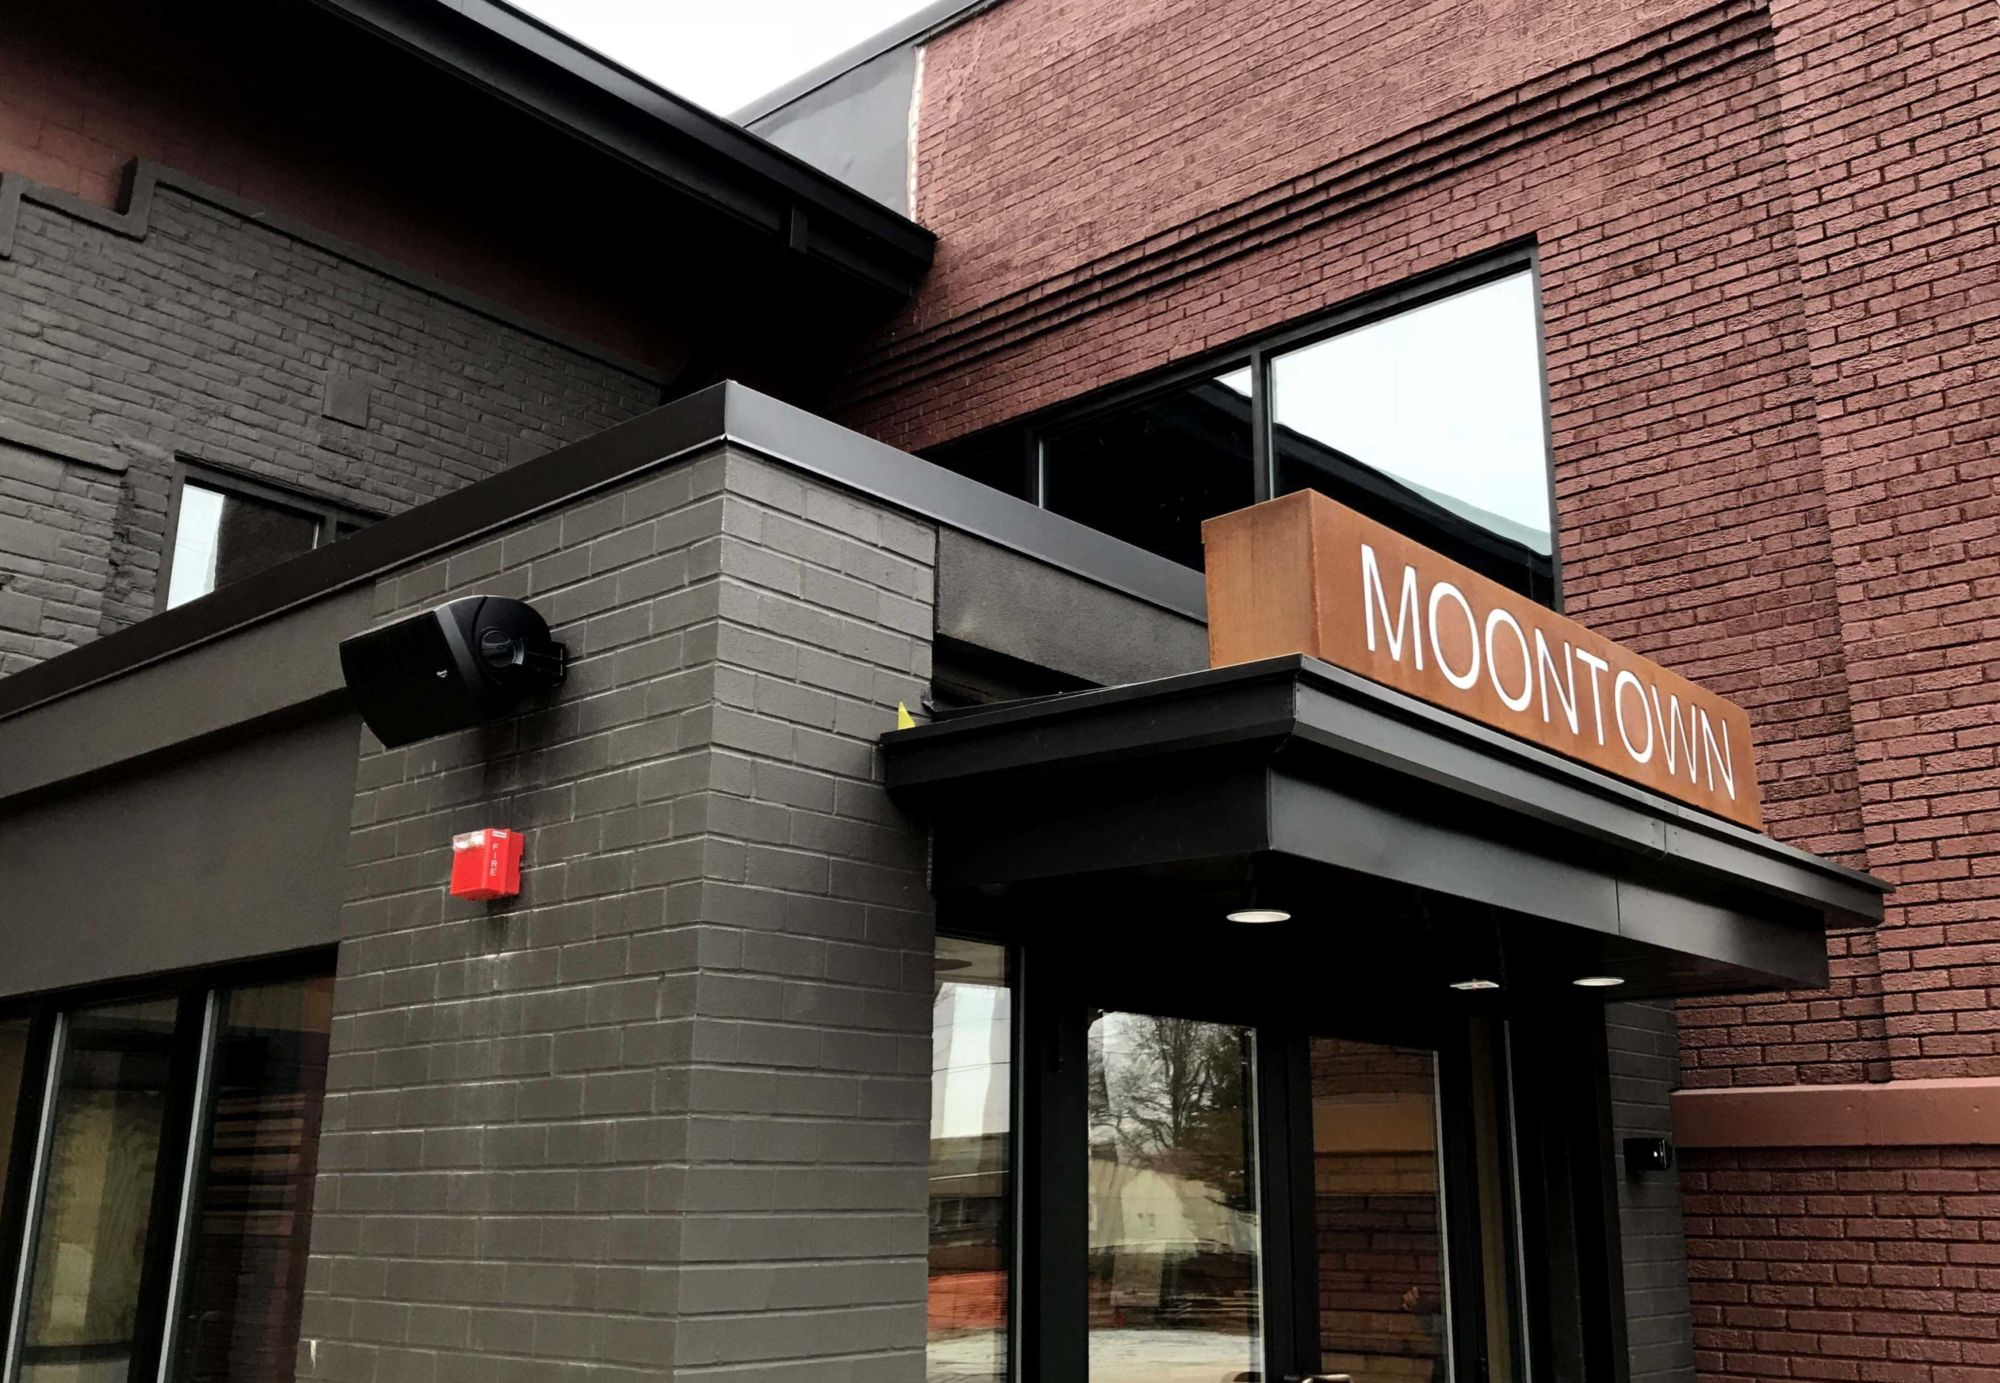 Klipsch outdoor speaker at Moontown Brewing Company in Whitestown, IN